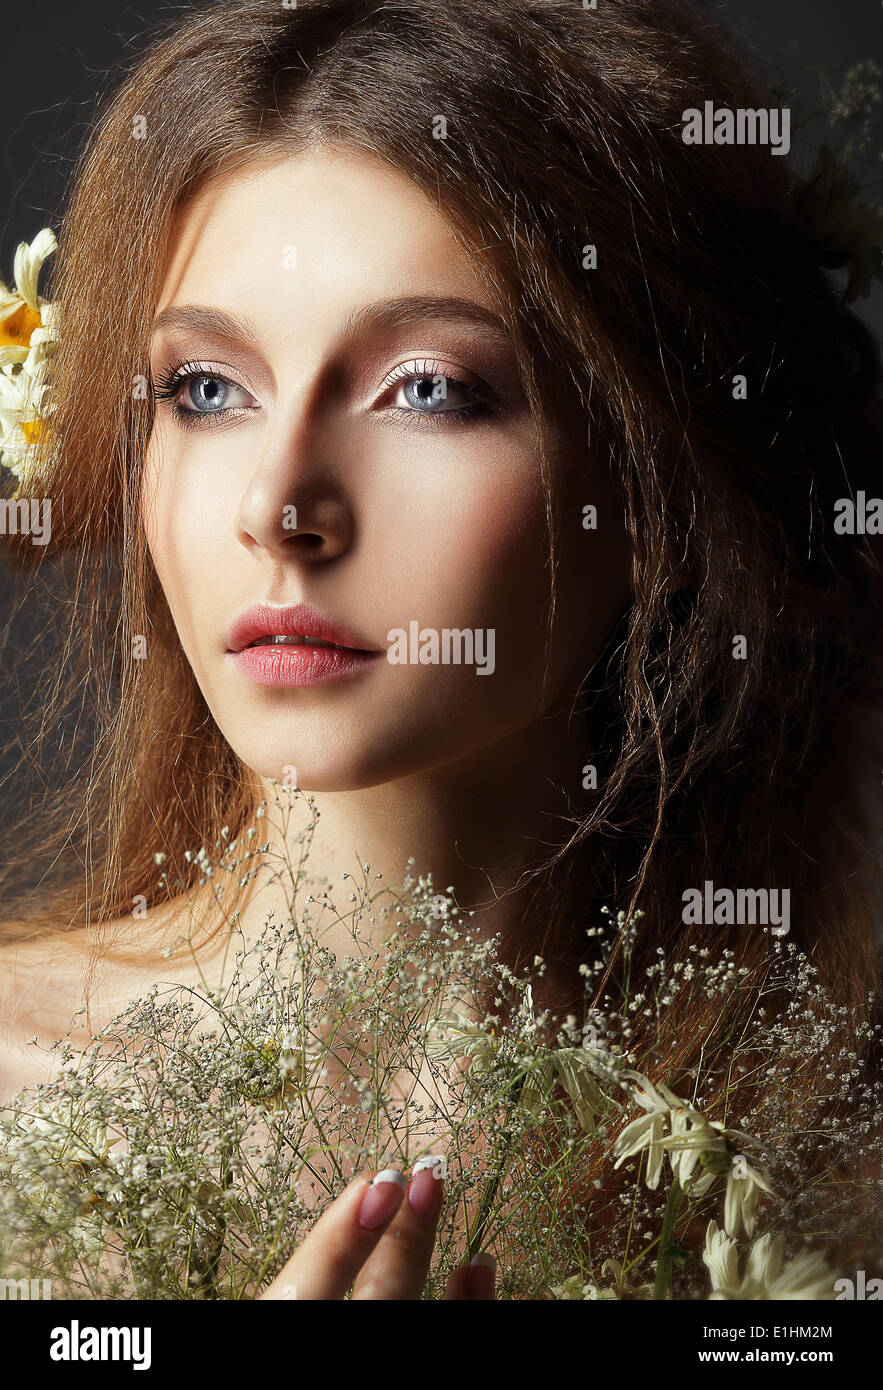 Autumn. Pensive Romantic Brunette with Leafy Withered Herbarium - Stock Image